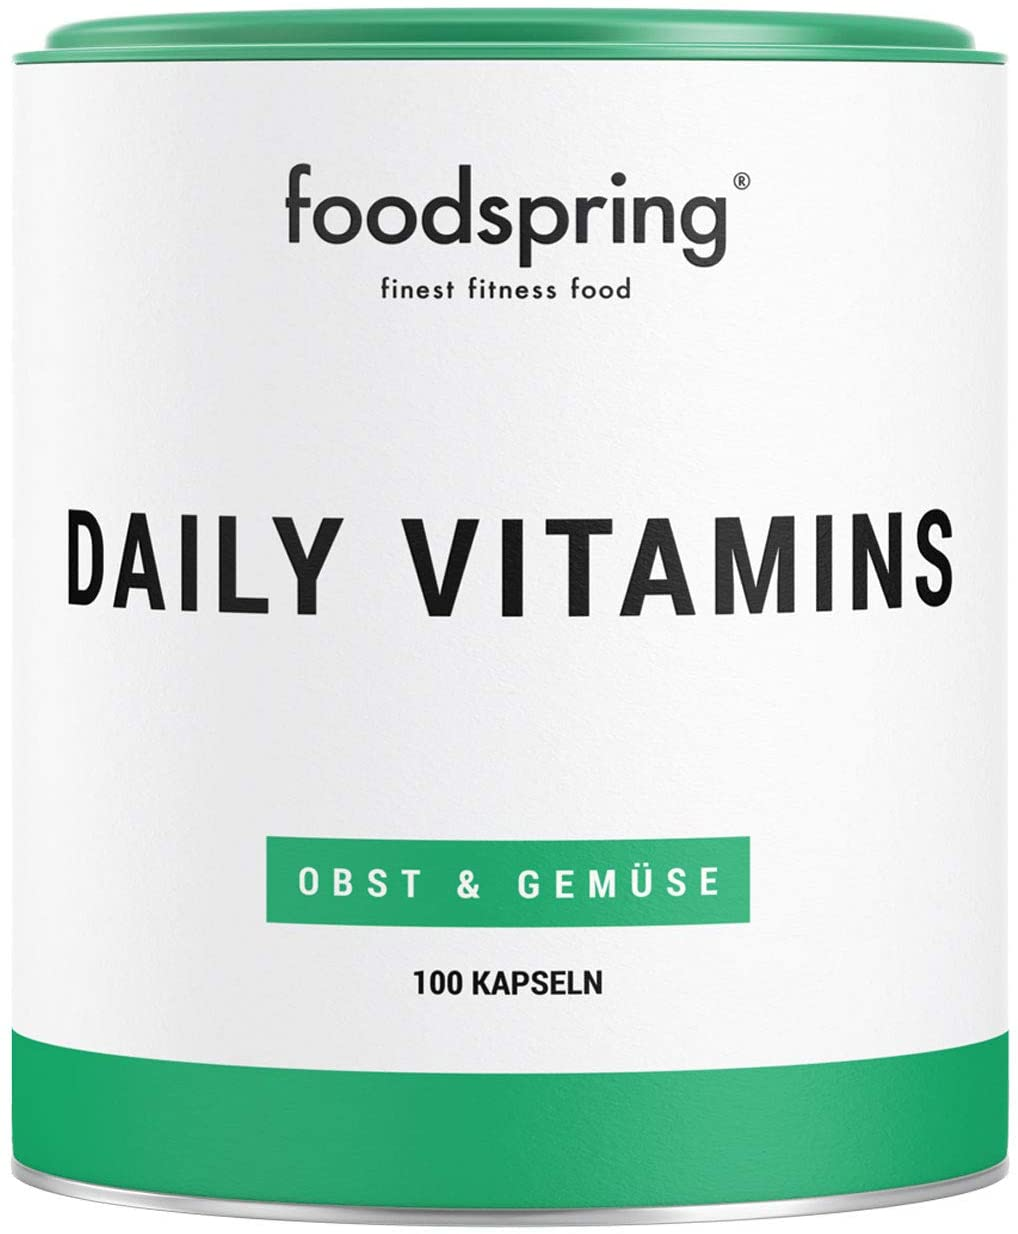 foodspring - Daily Vitamins